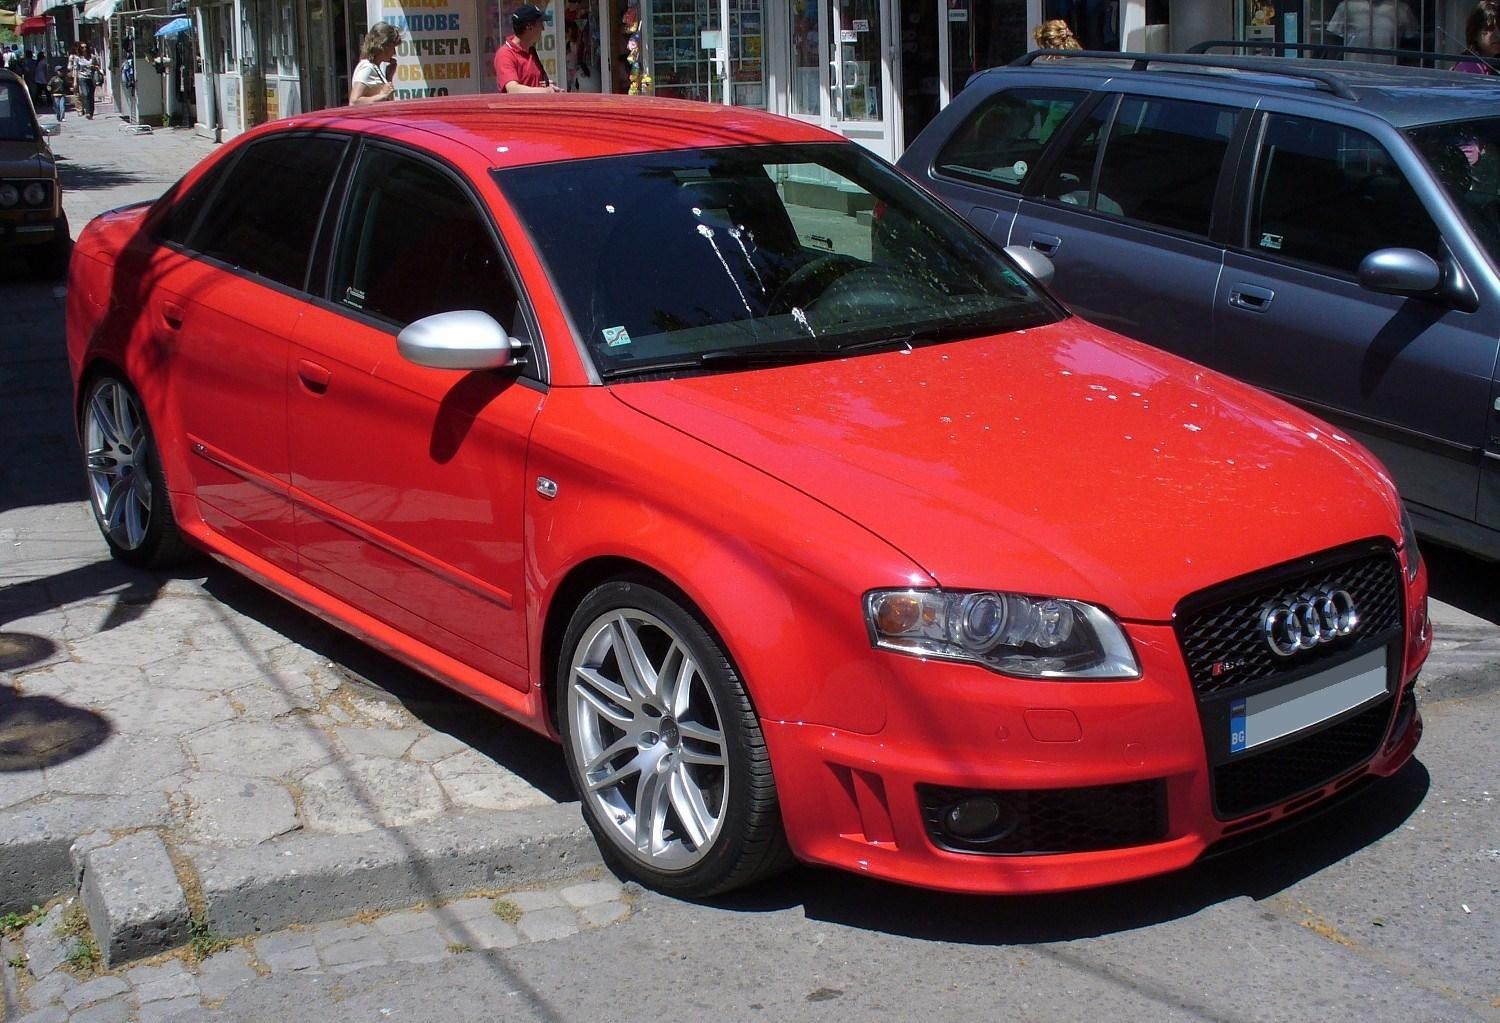 AUDI RS4 Wallpapers in High DEF For Desktop, Laptop, Tablet & Mobile 1 Wallpaper